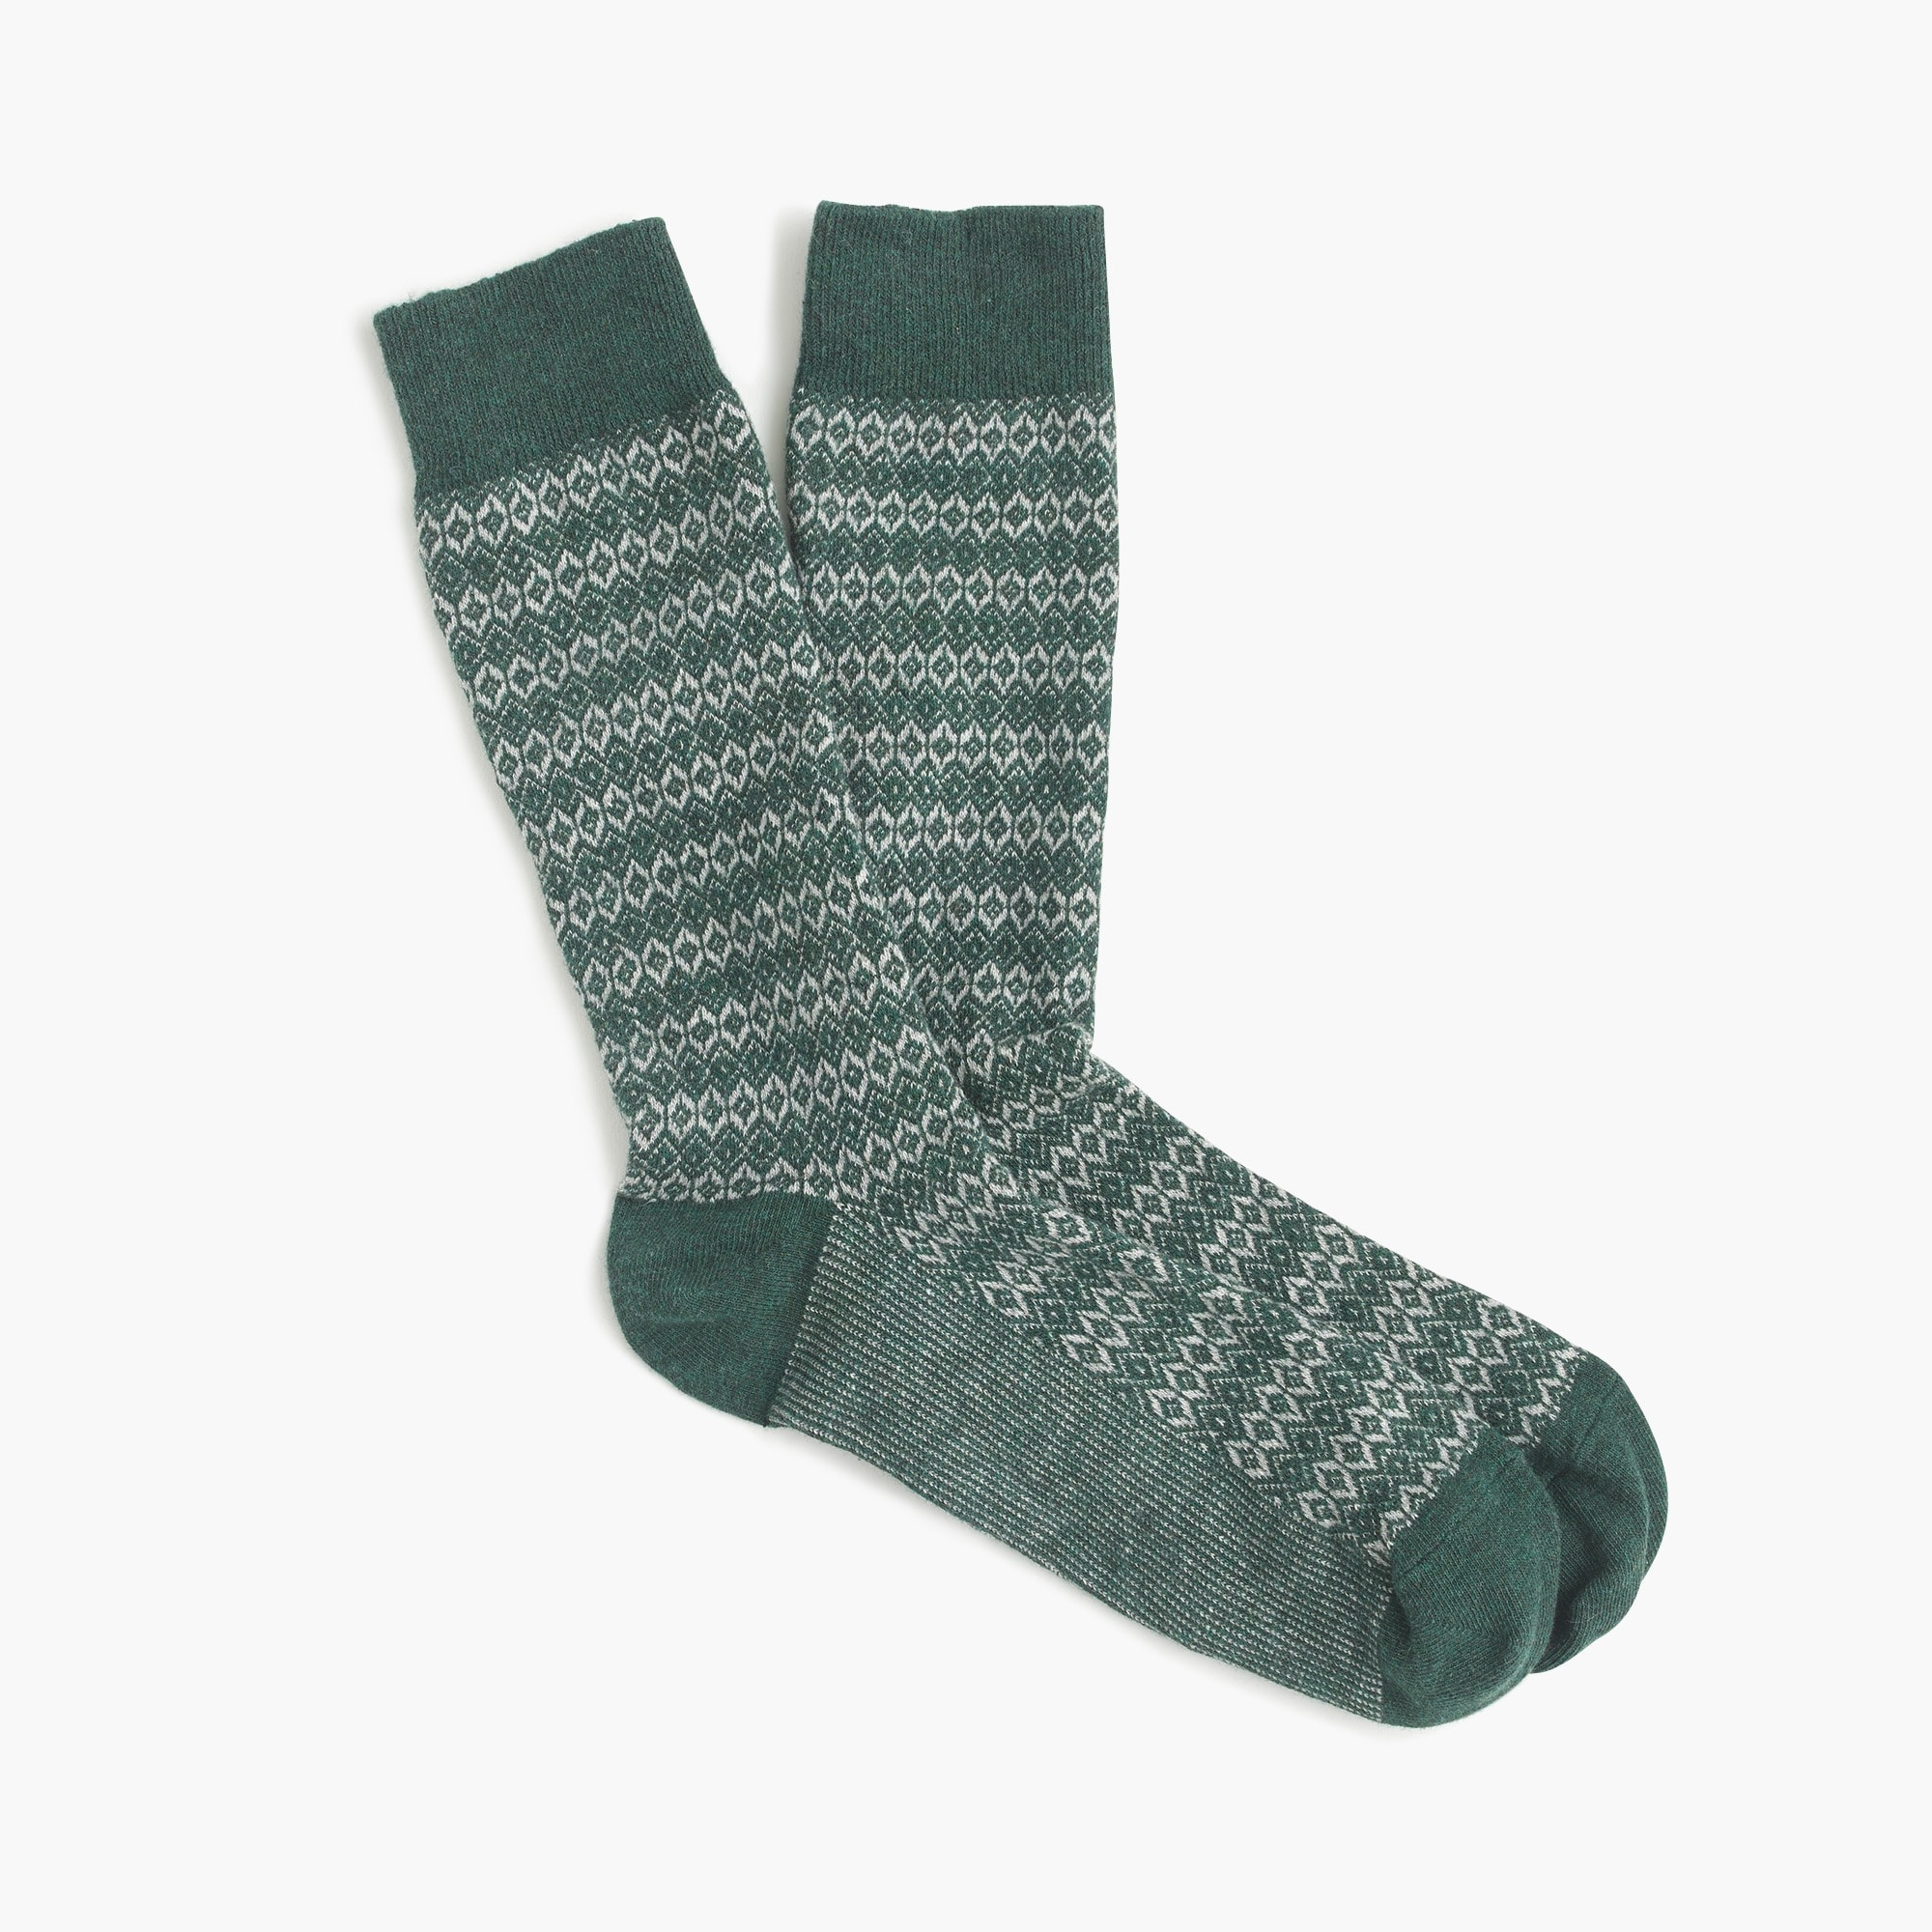 men's diamond weave socks - men's accessories